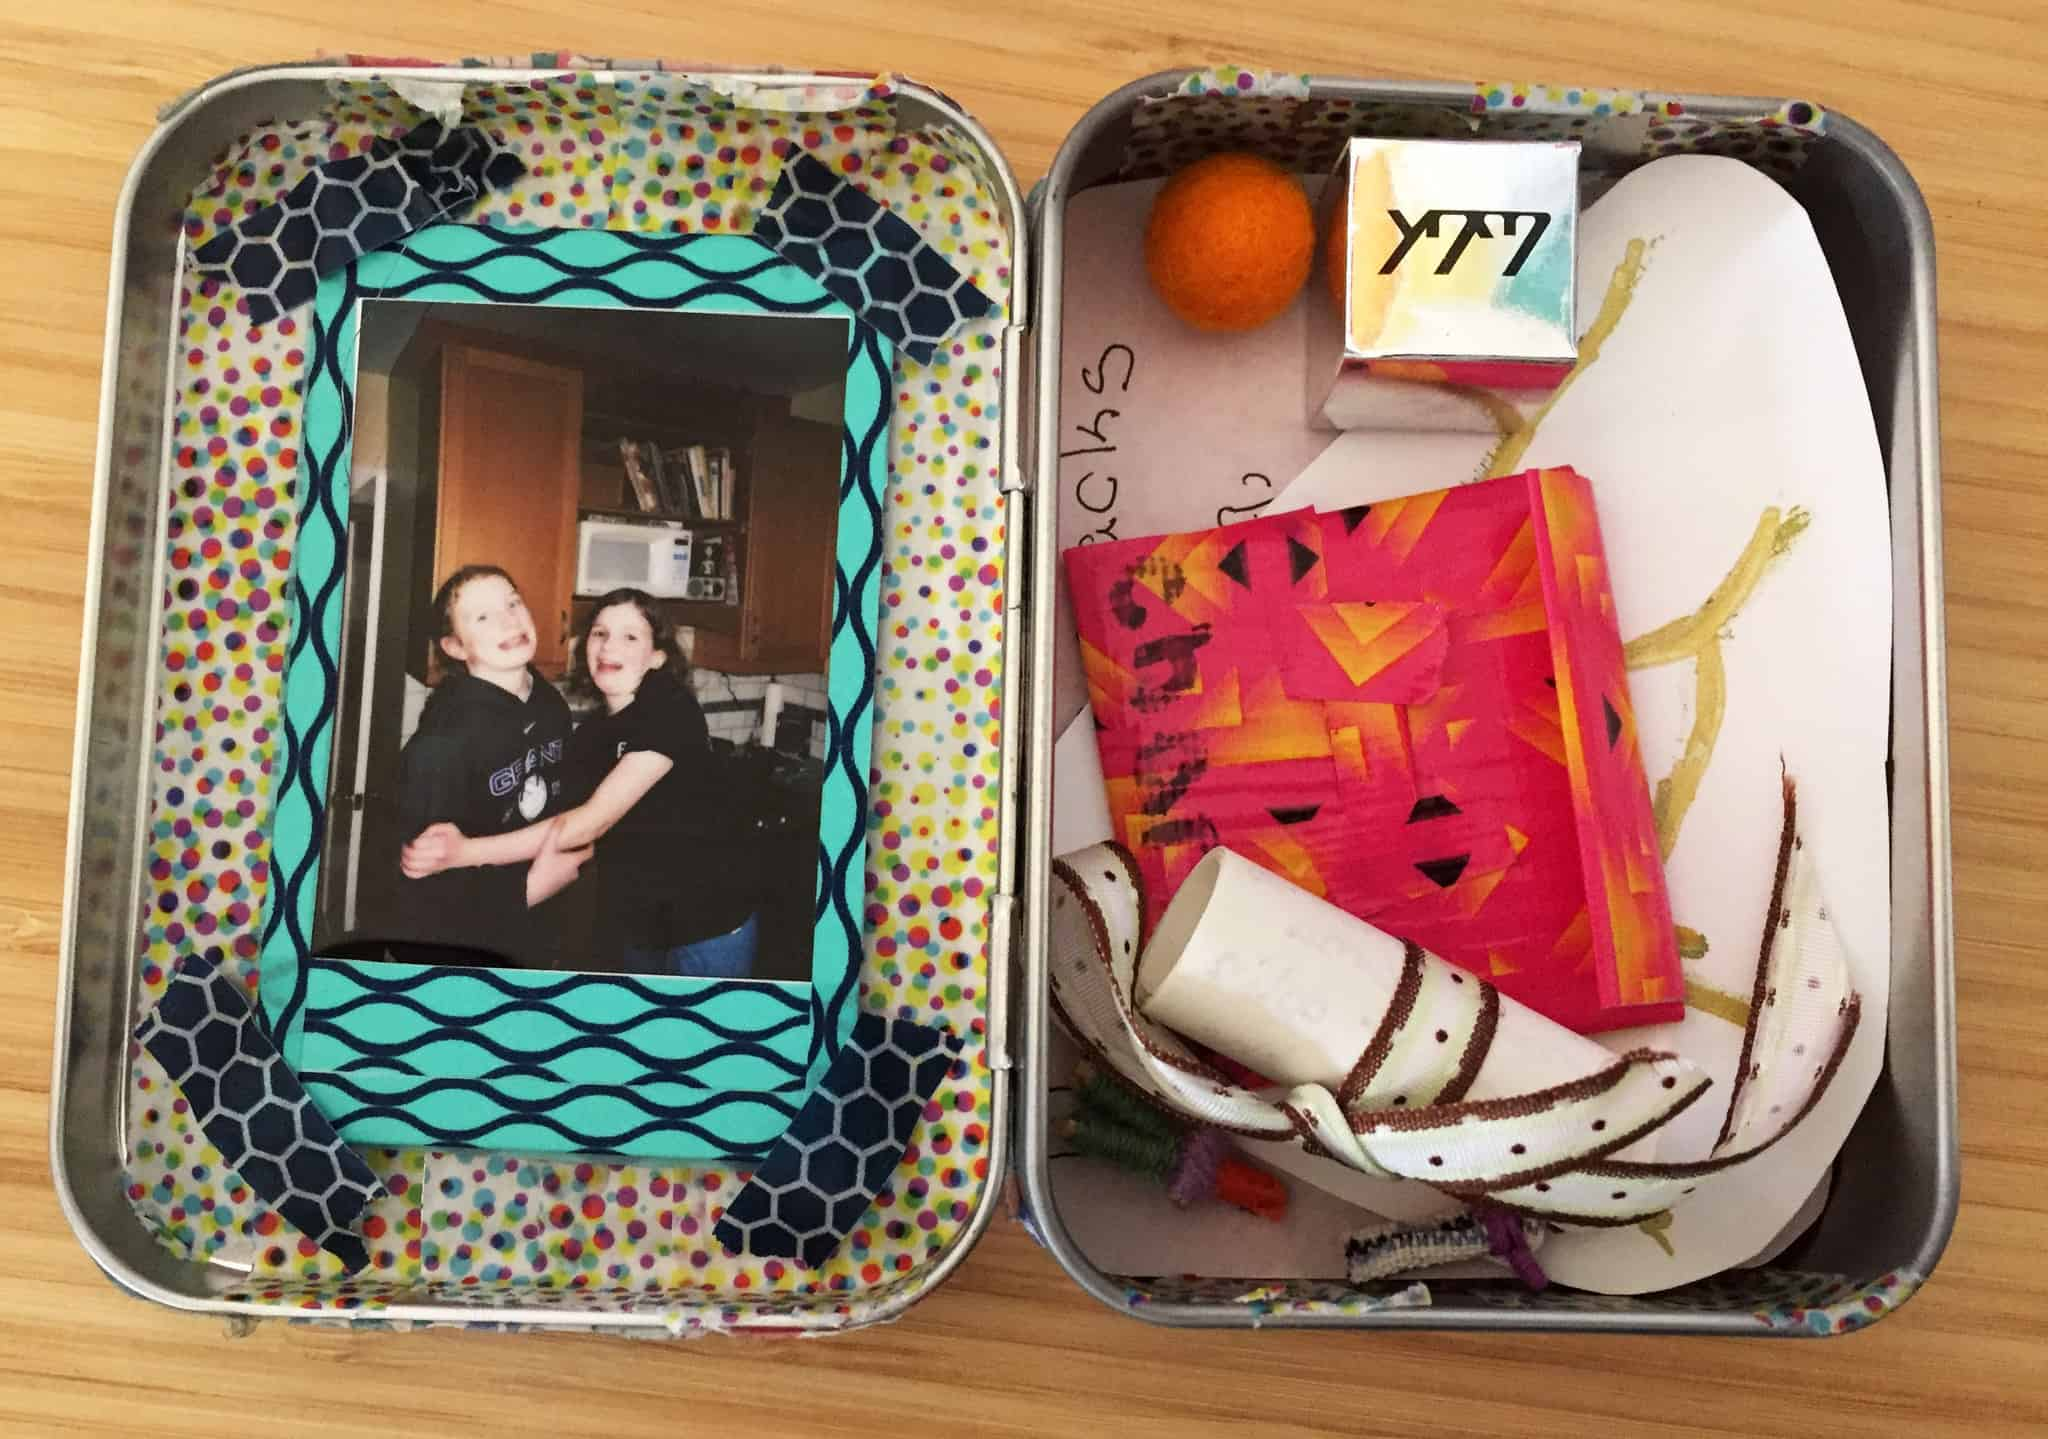 Metal tin open, face up, with contents inside of it. On the left there's a photo of two youth smiling at the camera. On the right there are miscellaneous items including a red ball, small box, and paper.